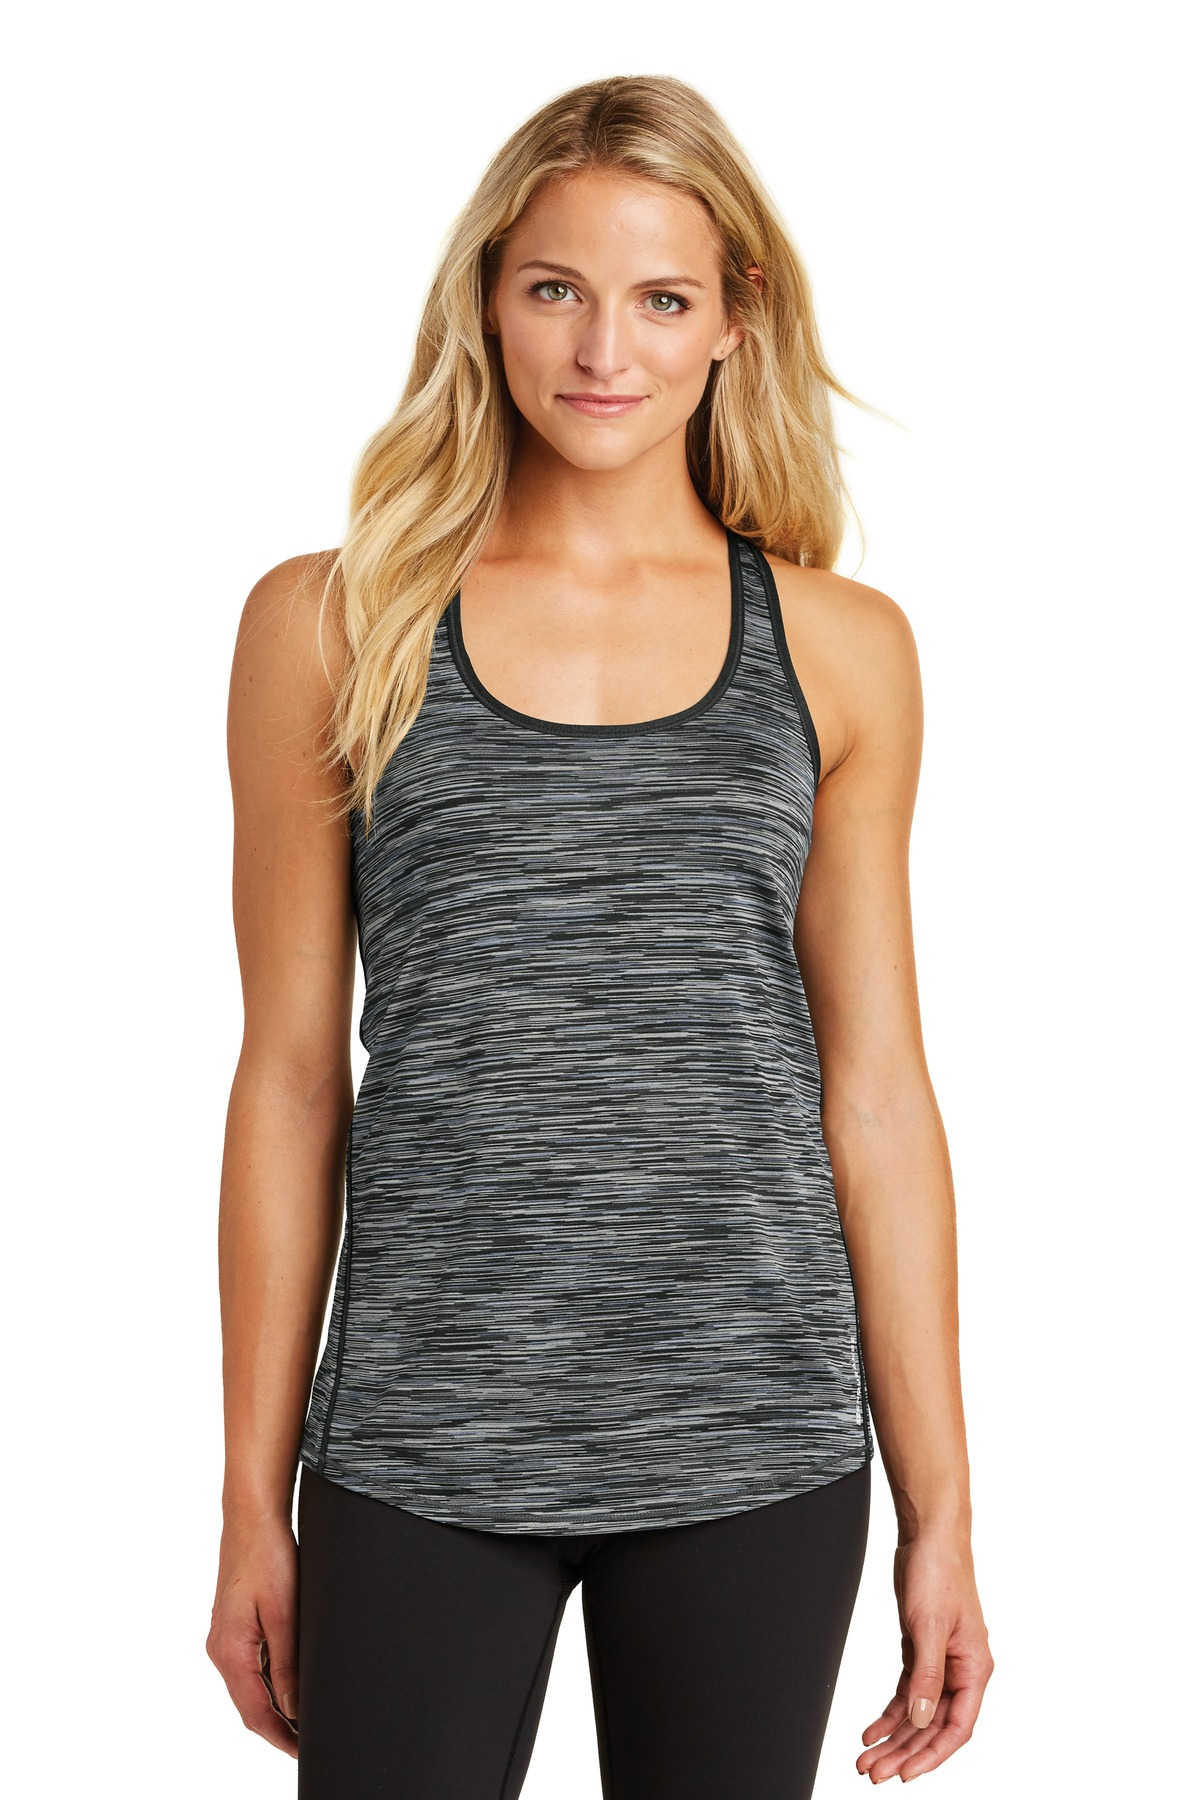 OGIO  ®  ENDURANCE Ladies Verge Racerback Tank. LOE327 - Blacktop Space Dye